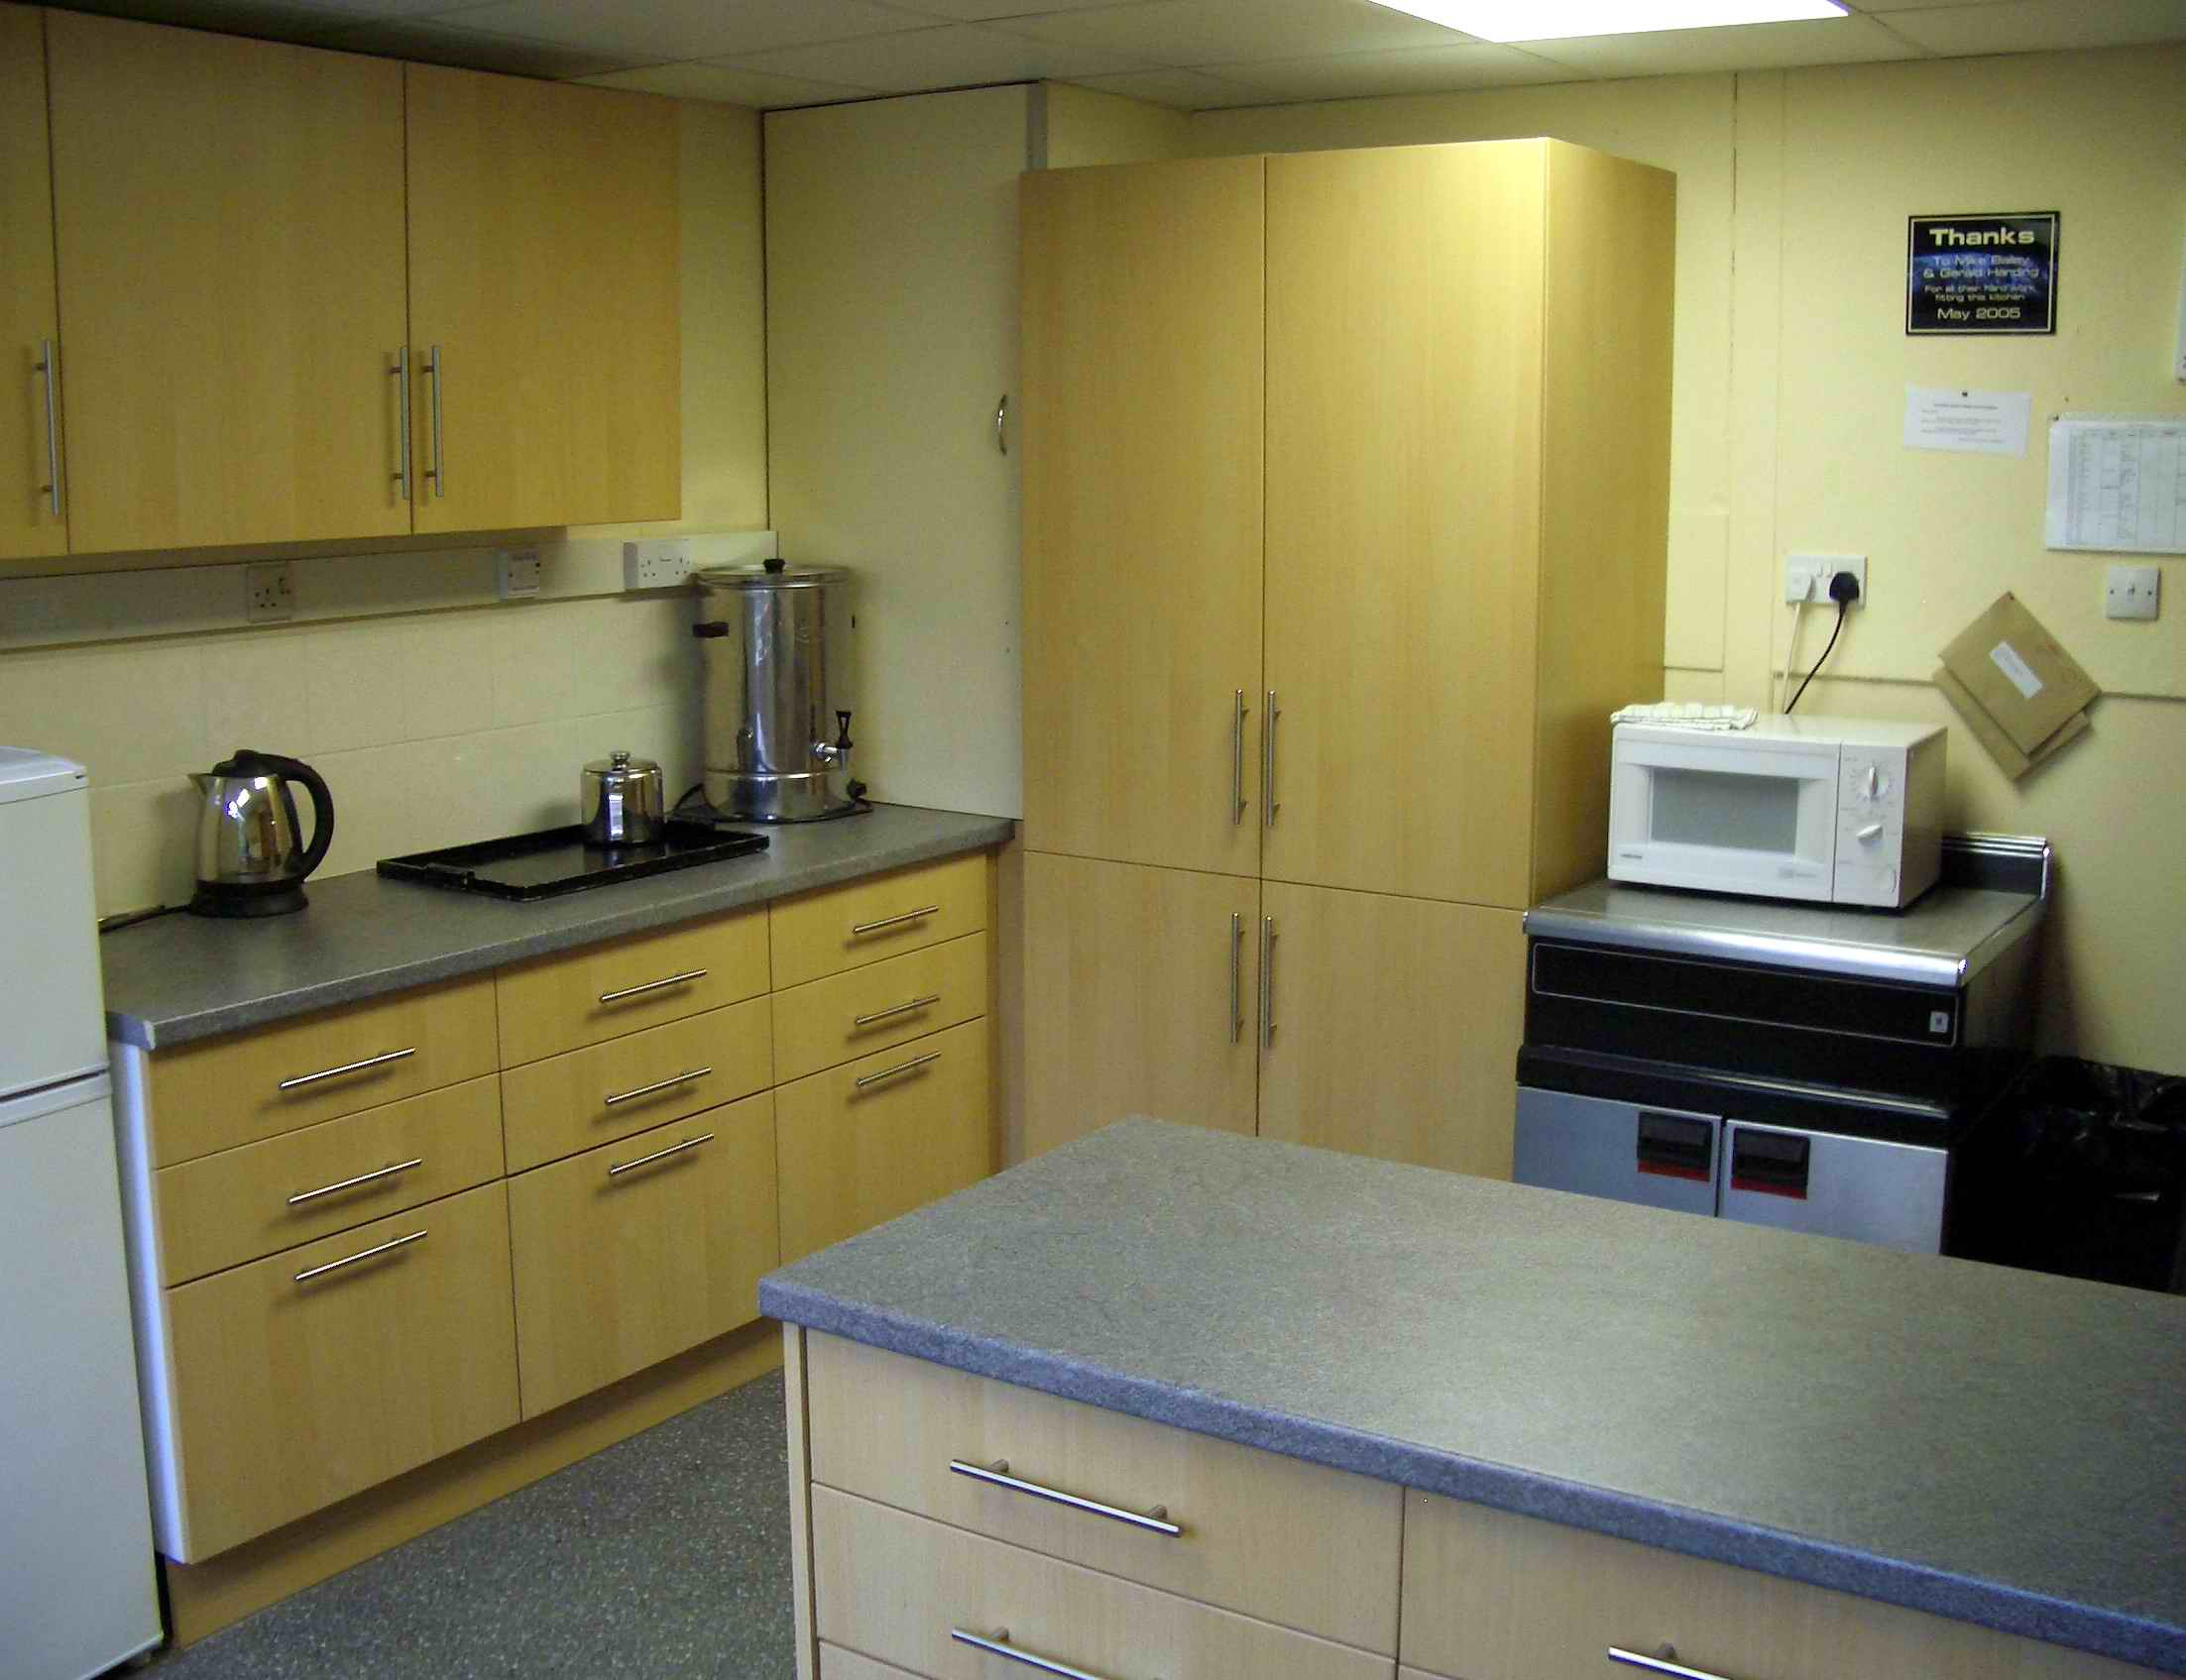 The new kitchen has been fitted